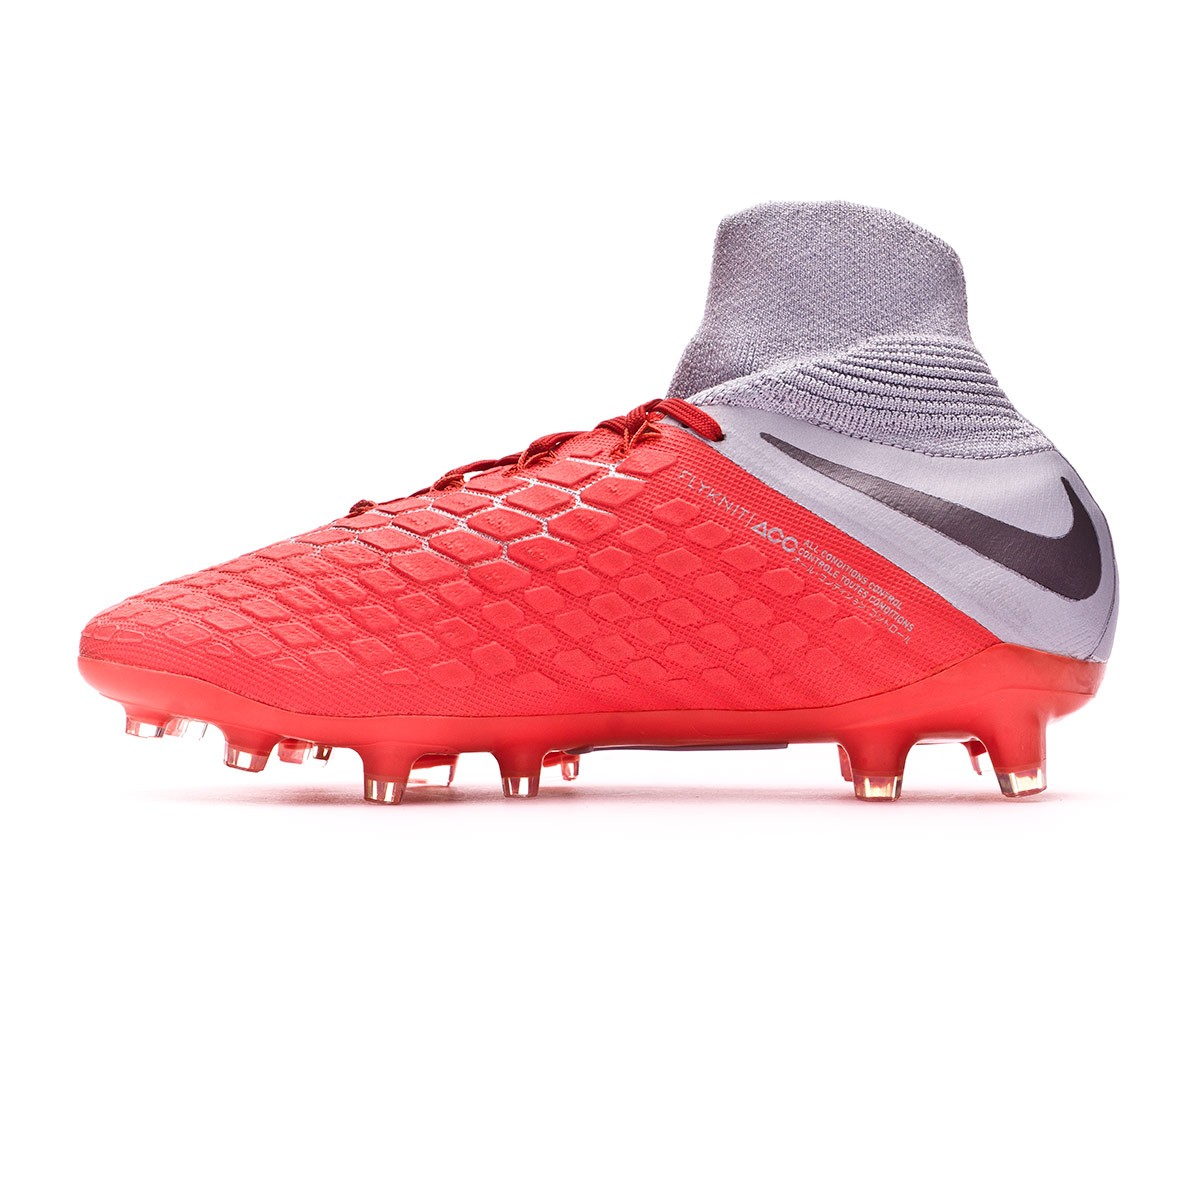 33a2252336a Football Boots Nike Kids Hypervenom Phantom III Elite DF FG Light  crimson-Metallic dark grey-Wolf grey - Football store Fútbol Emotion